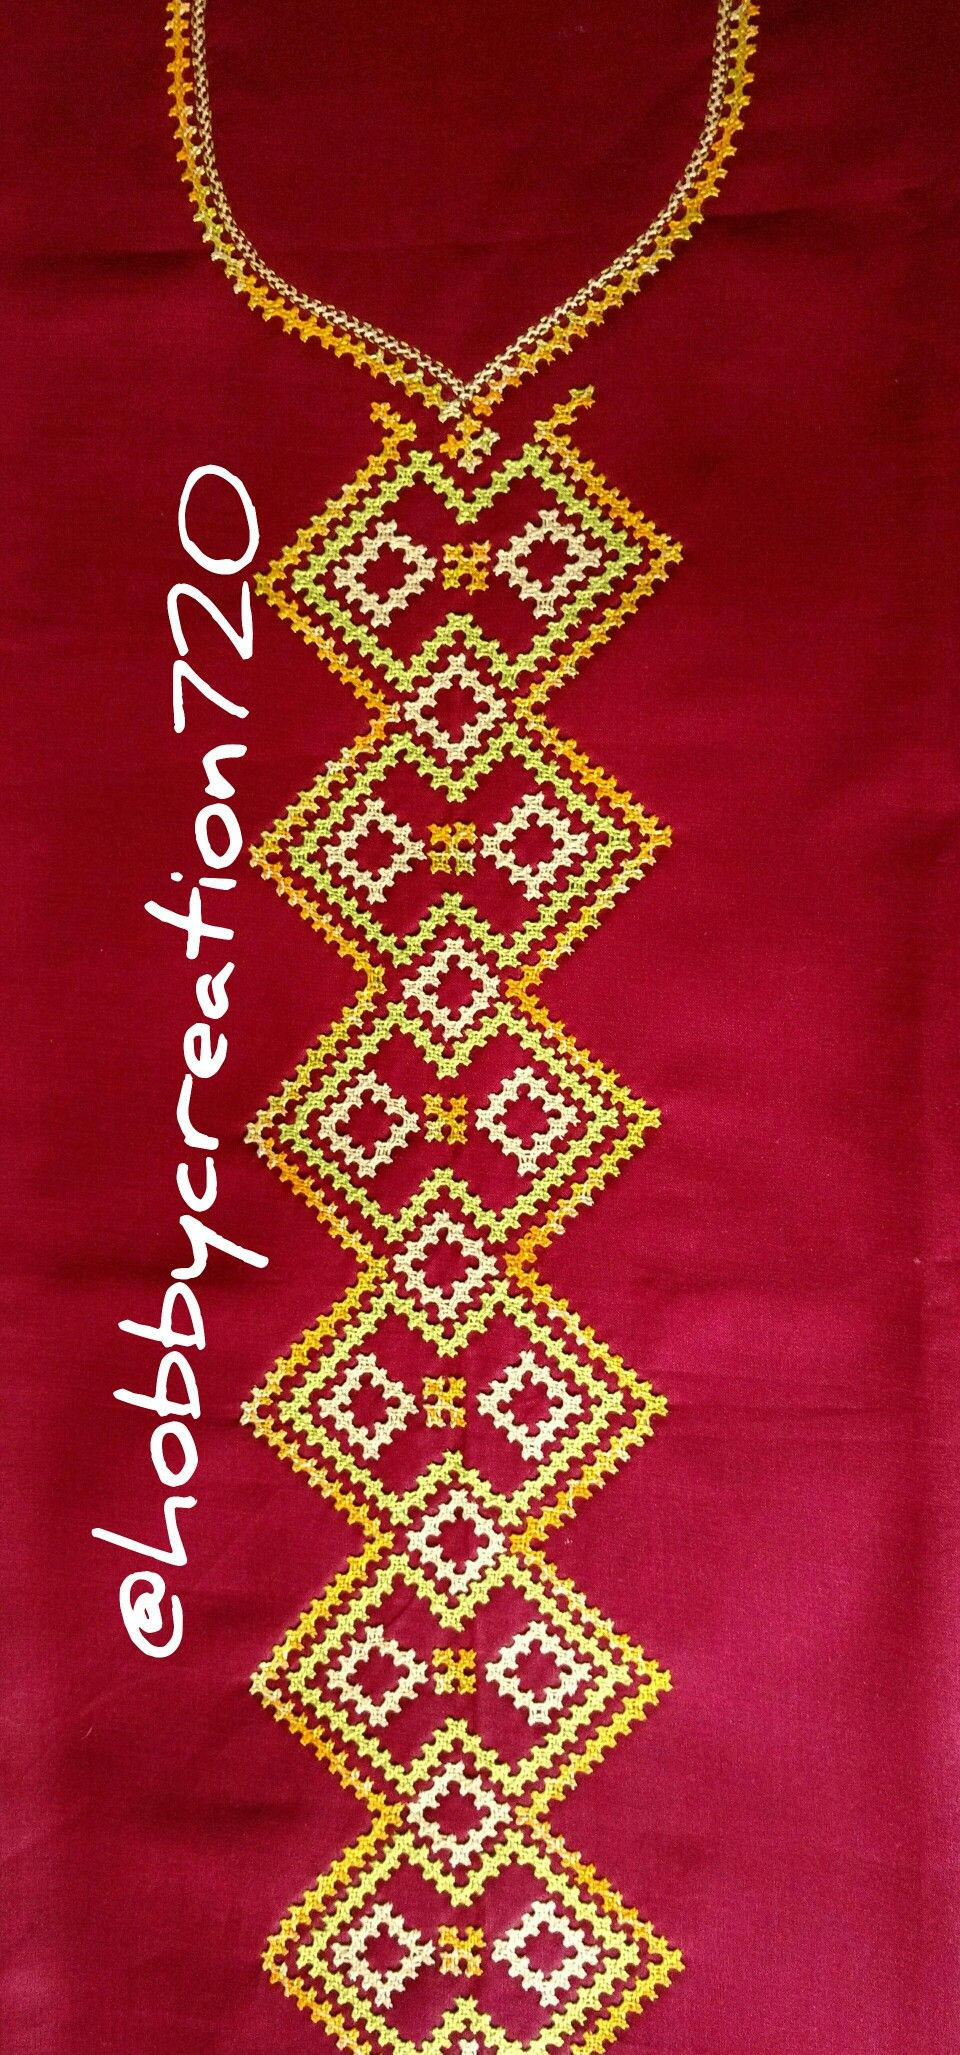 Pin by varsha rajhans on sindhi kachhi pinterest embroidery and